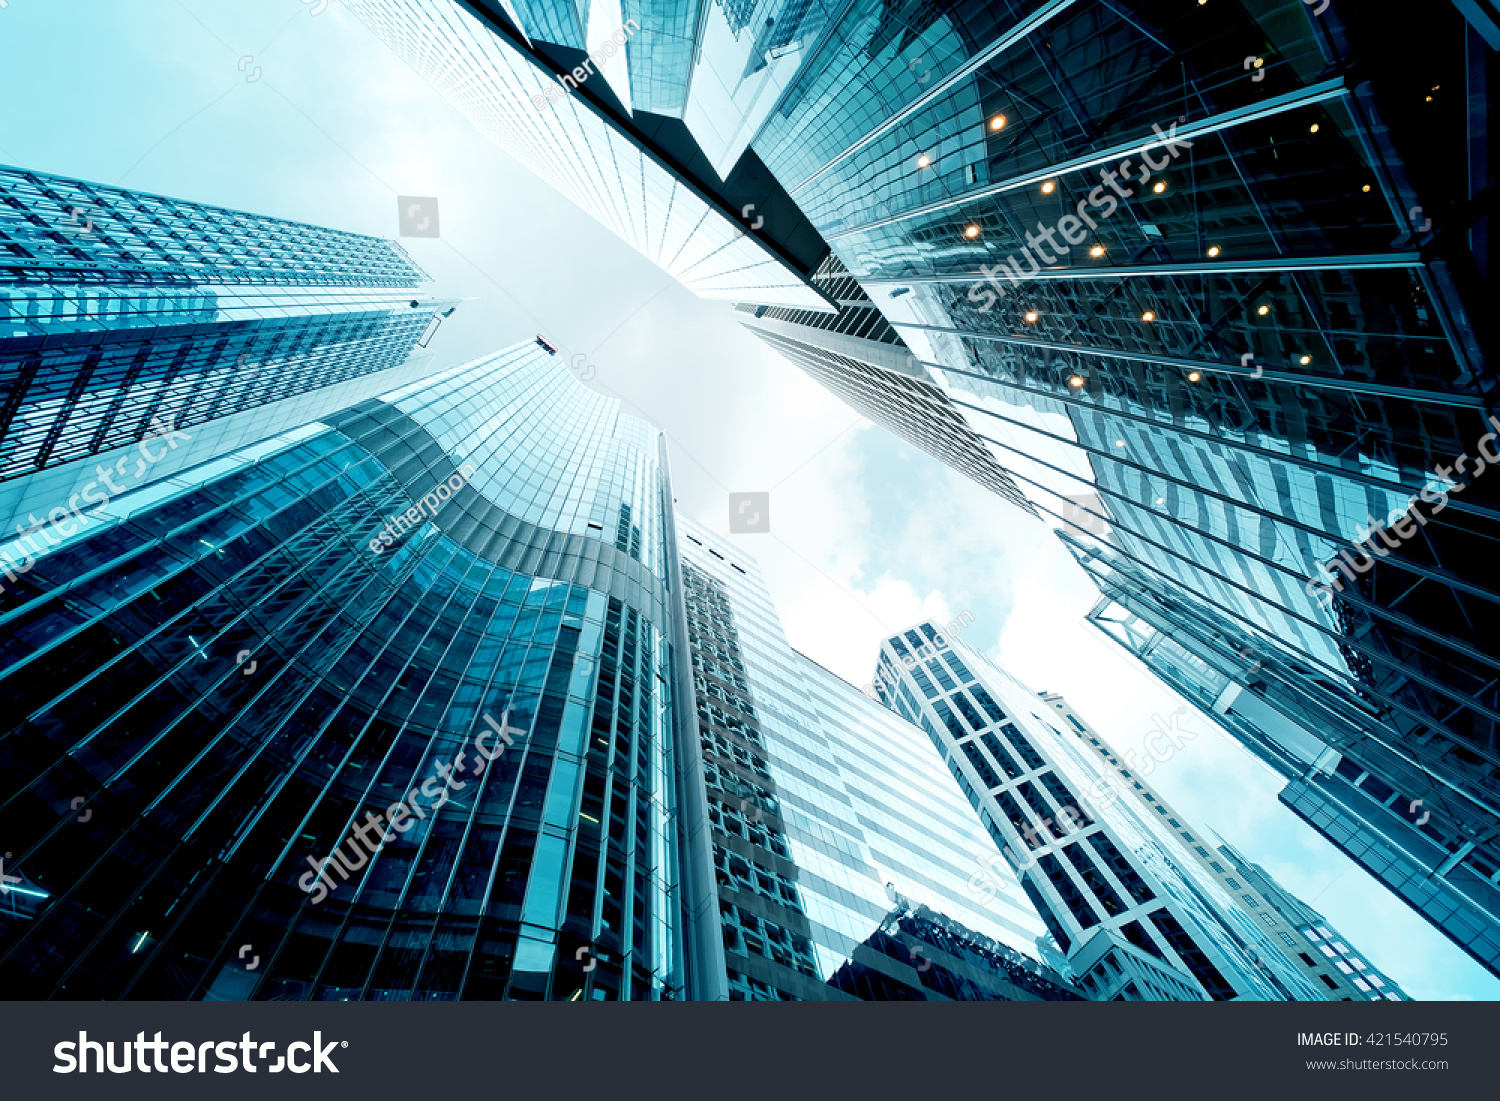 Low Angle View Of Modern Office Buildings Photo: Low Angle View Of Office Buildings Stock Photo 421540795